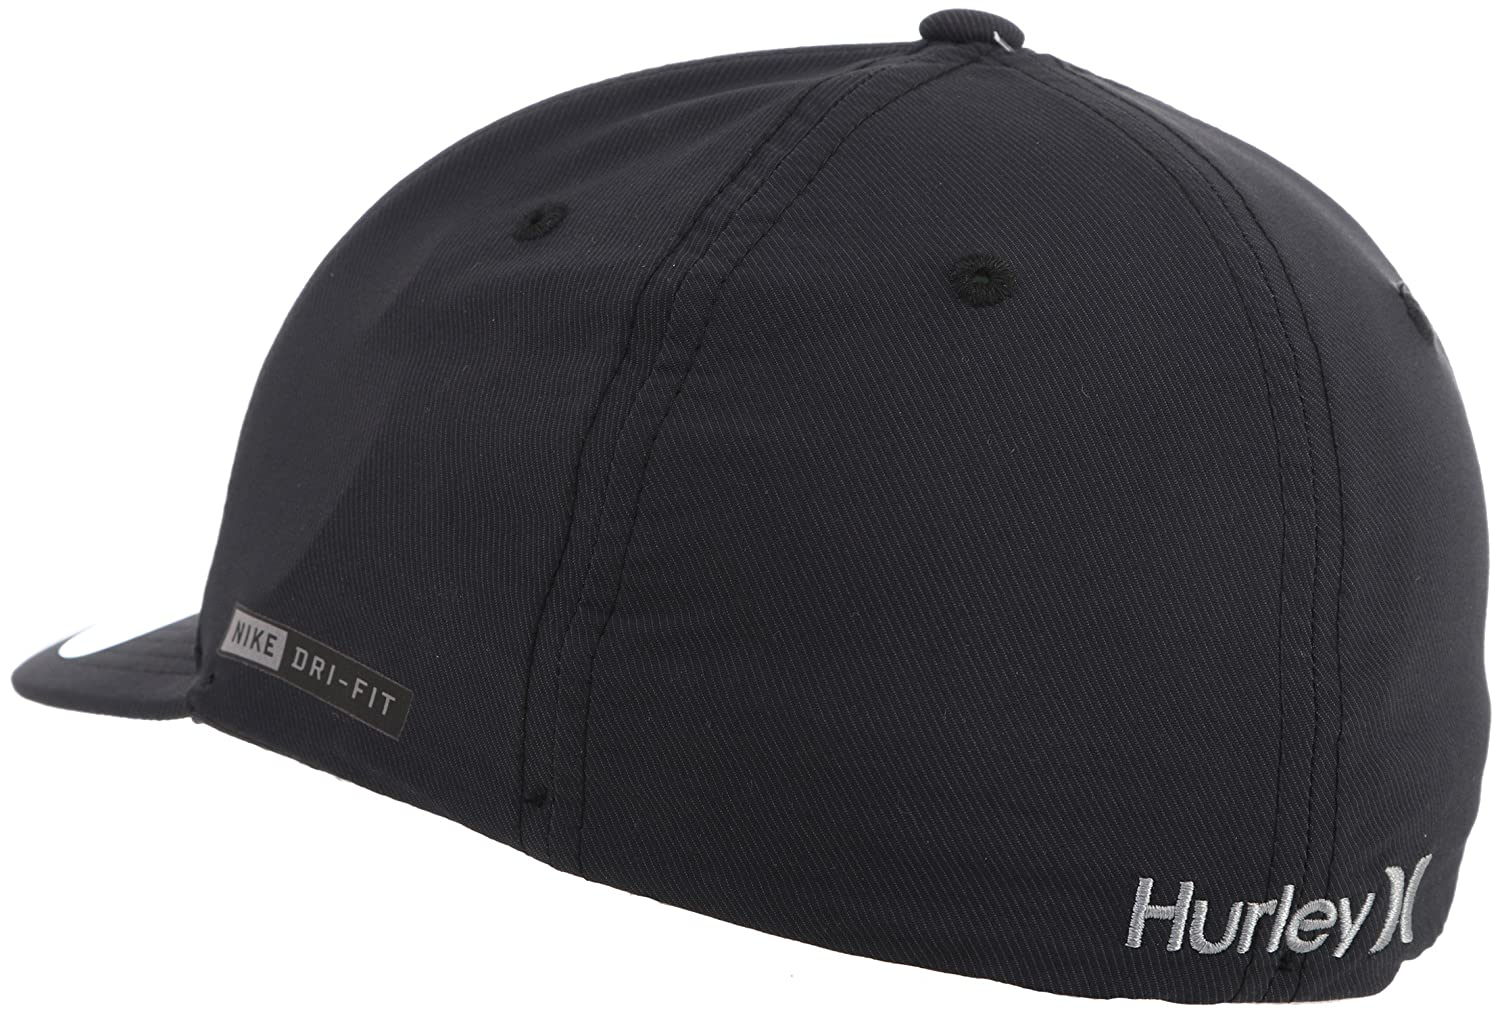 d61b850ec98 ... ebay clearance amazon hurley dri fit outline 2.0 mens hat black s m  clothing 90467 0d5ec 56dad